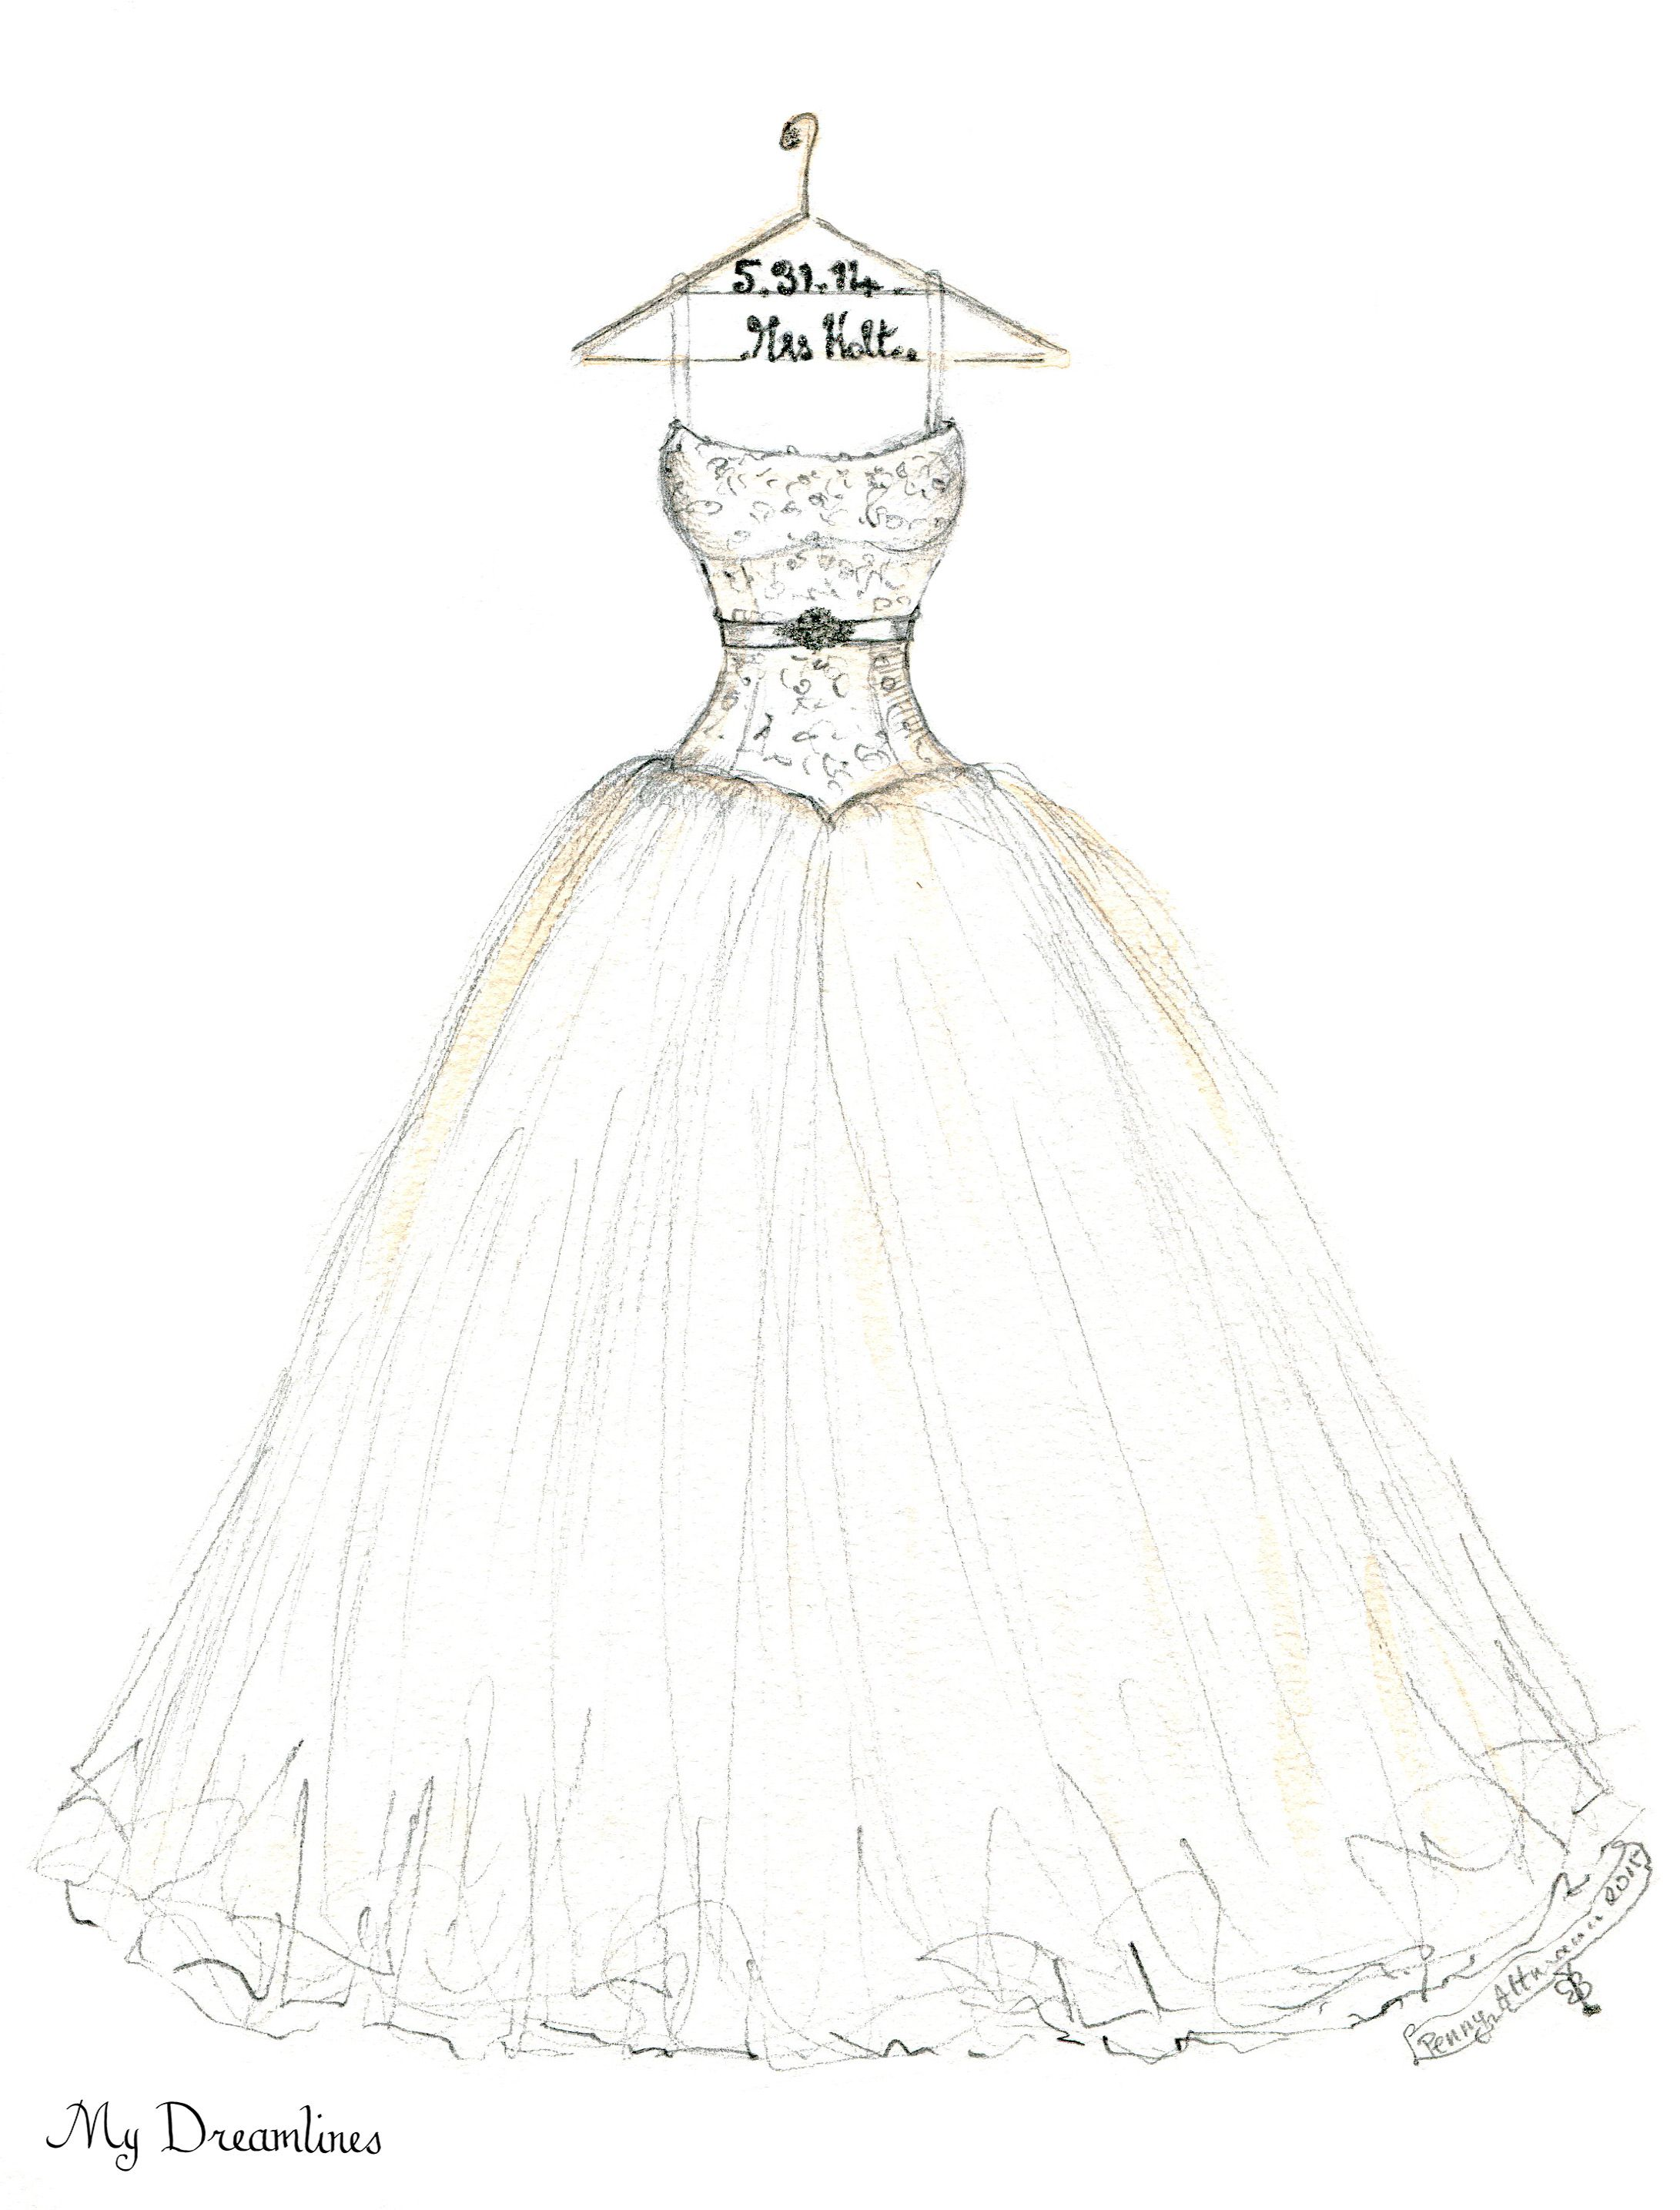 wedding dress sketch for the bride The artist behind Dreamlines Nikki Gentry draws the most beautiful wedding dress works of art